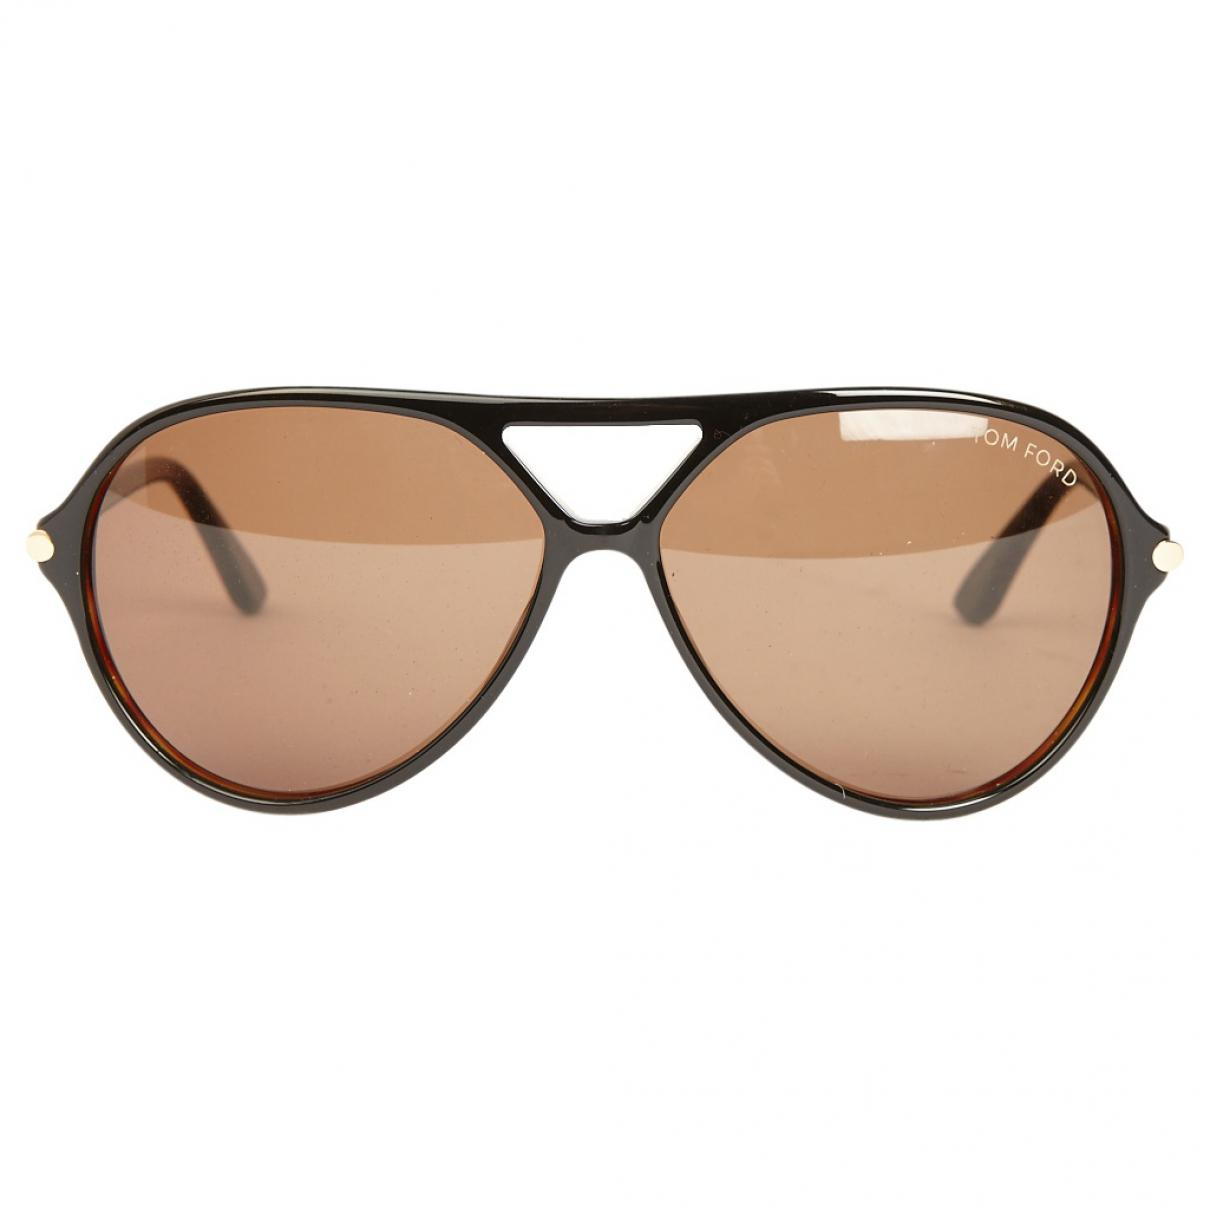 1fa2d164c76d5 Lyst - Tom Ford Sunglasses in Brown